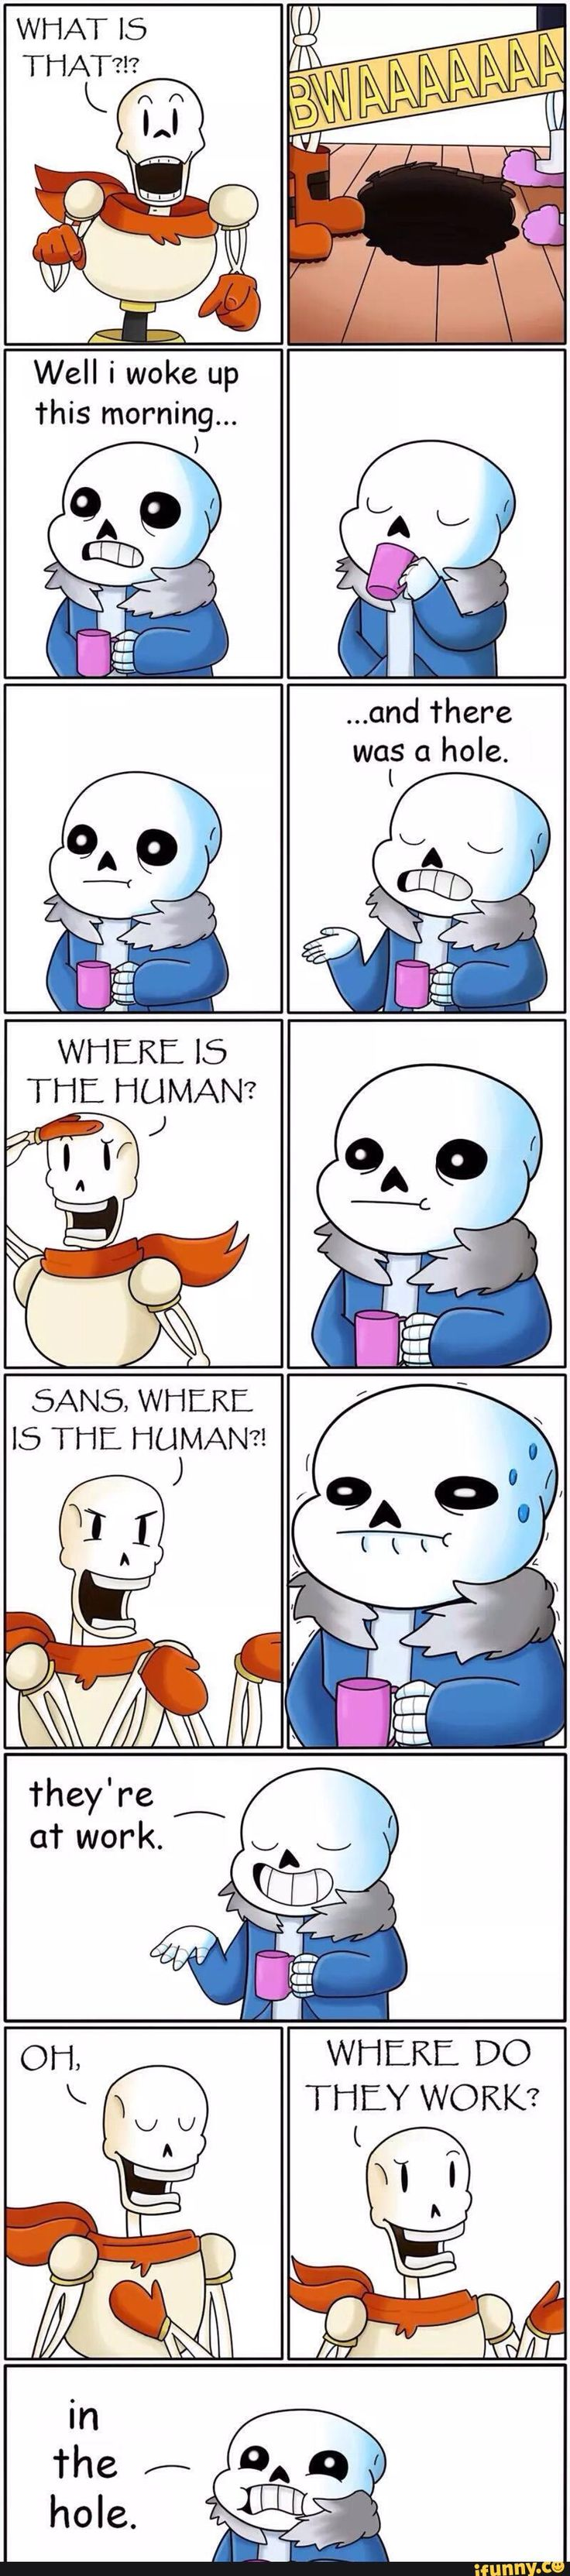 undertale, papyrus, sans<<<HAHA this is based of the Tomska video the hole! Go check it out it's really funny